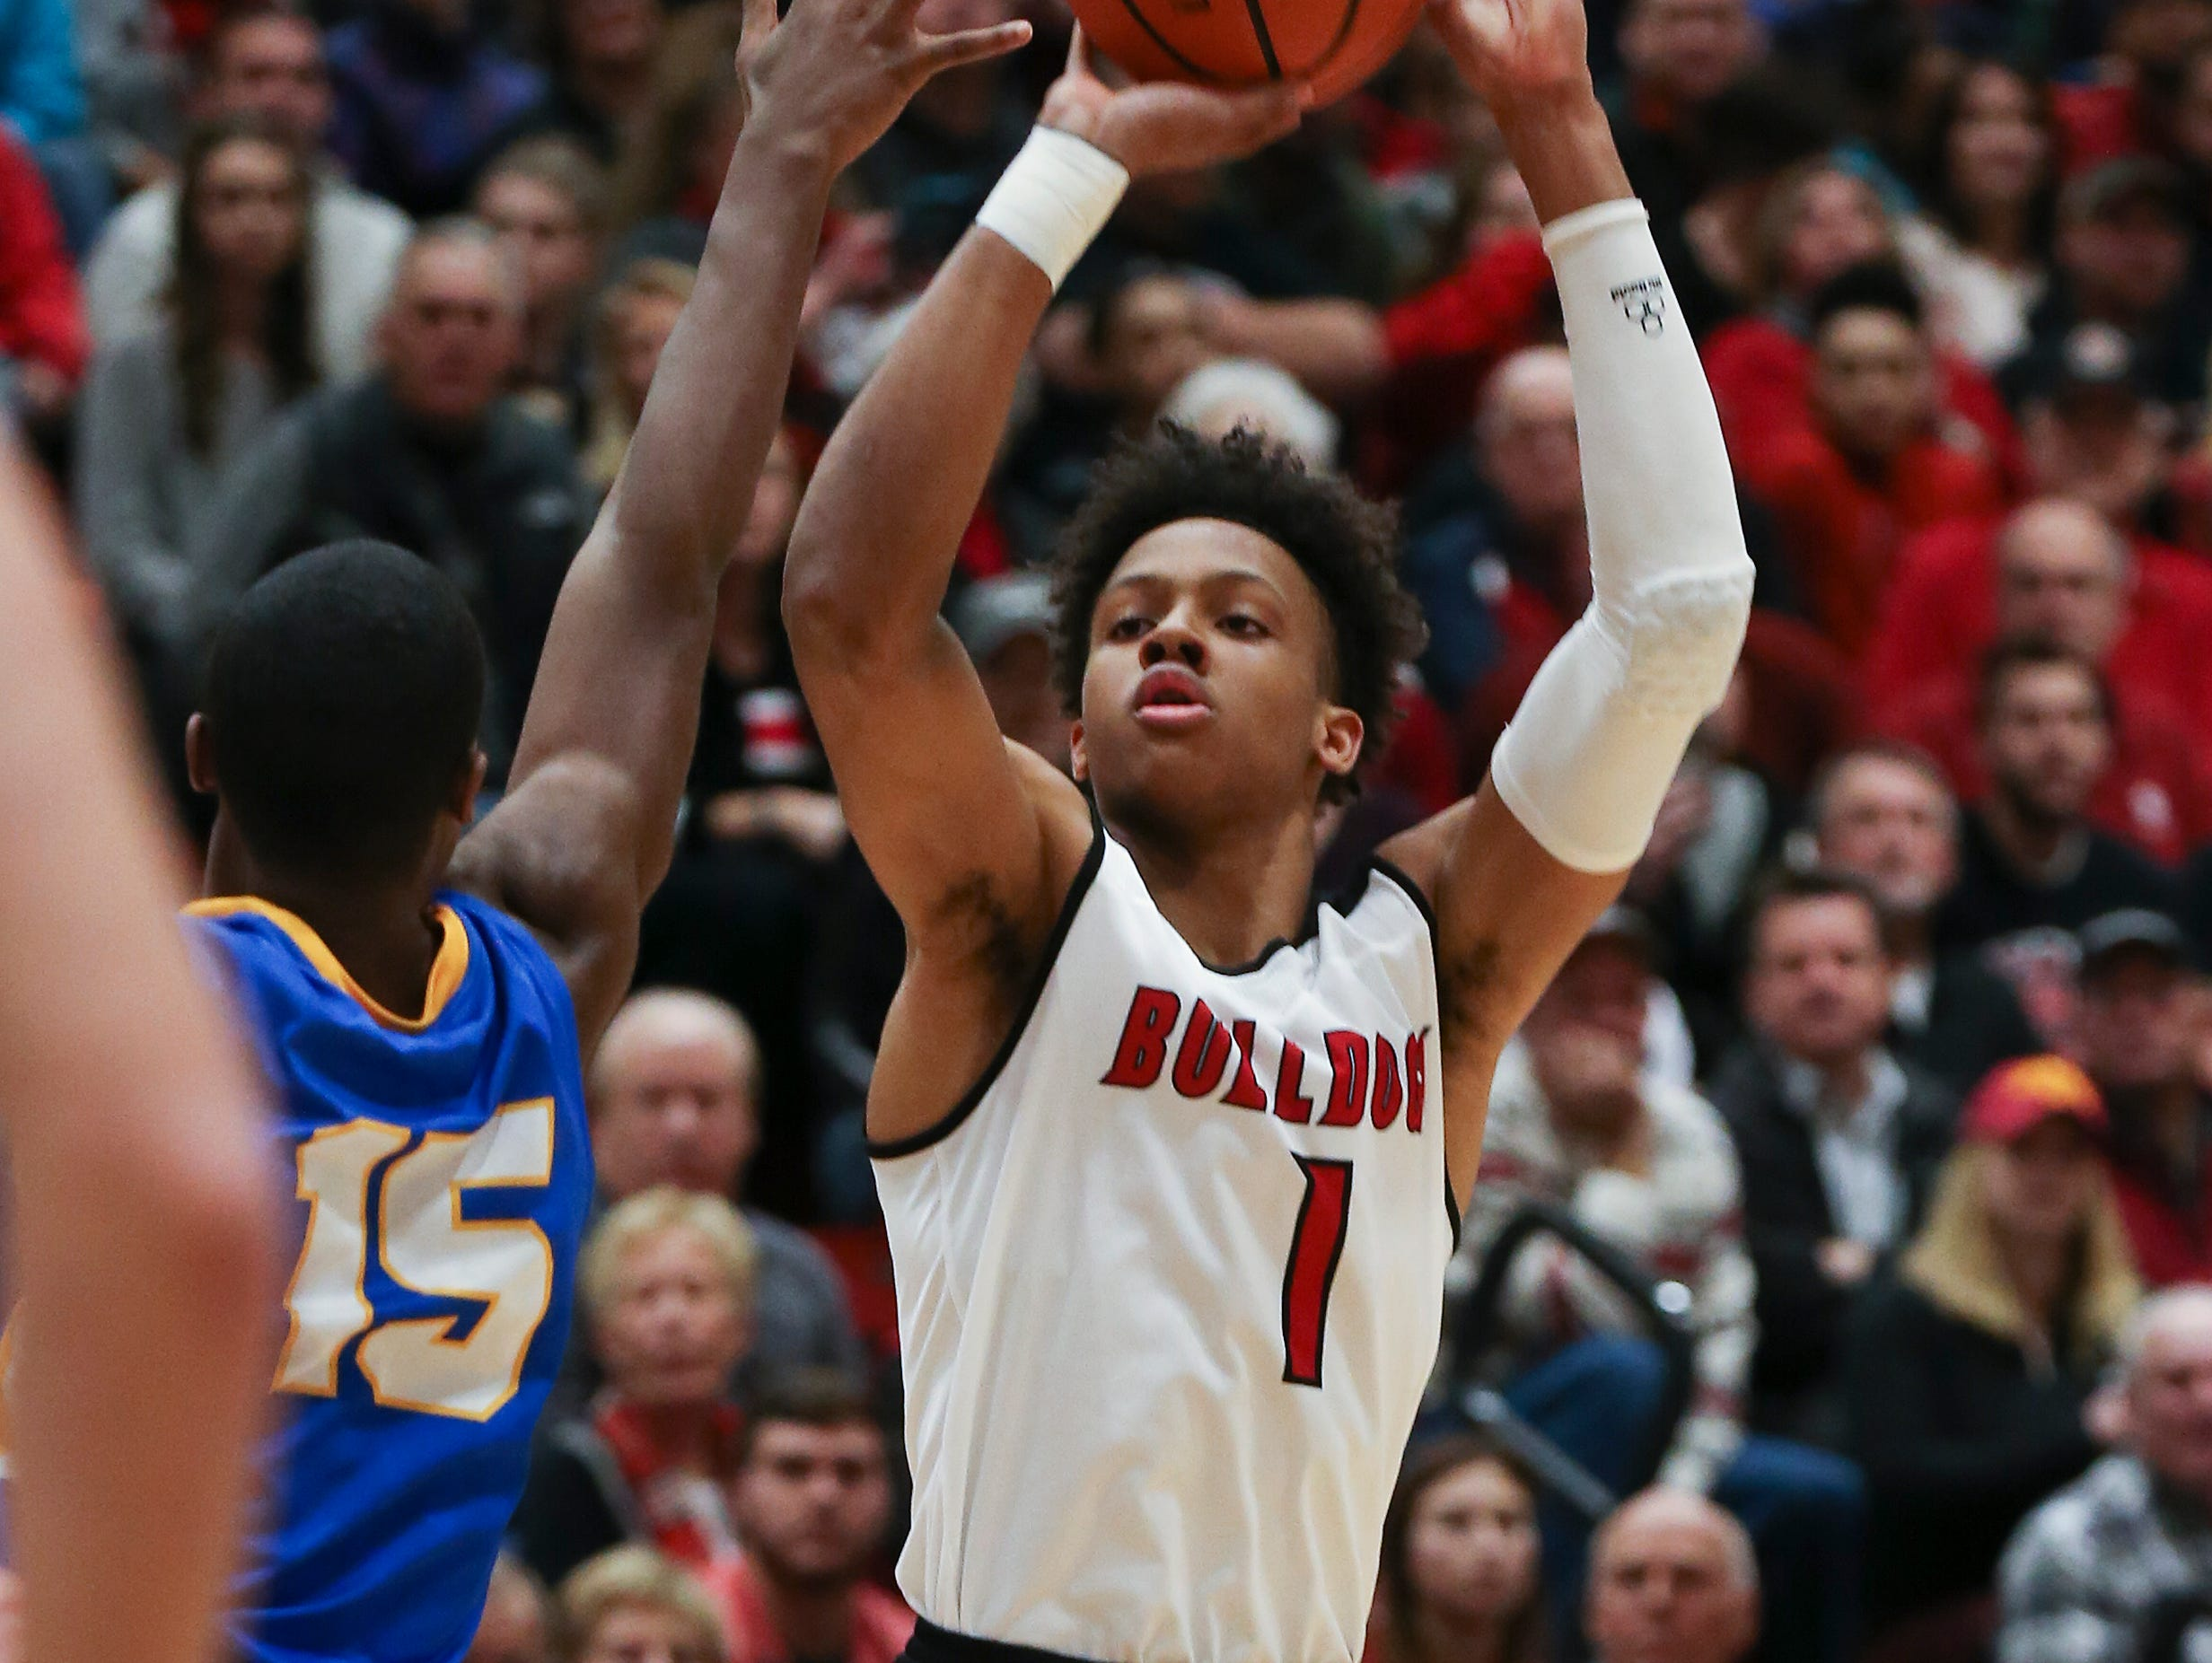 New Albany's Romeo Langford (1) shoots against Carmel's Jalen Whack (15) during their game at New Albany High School. New Albany edged Carmel 55-52. Dec. 20, 2016